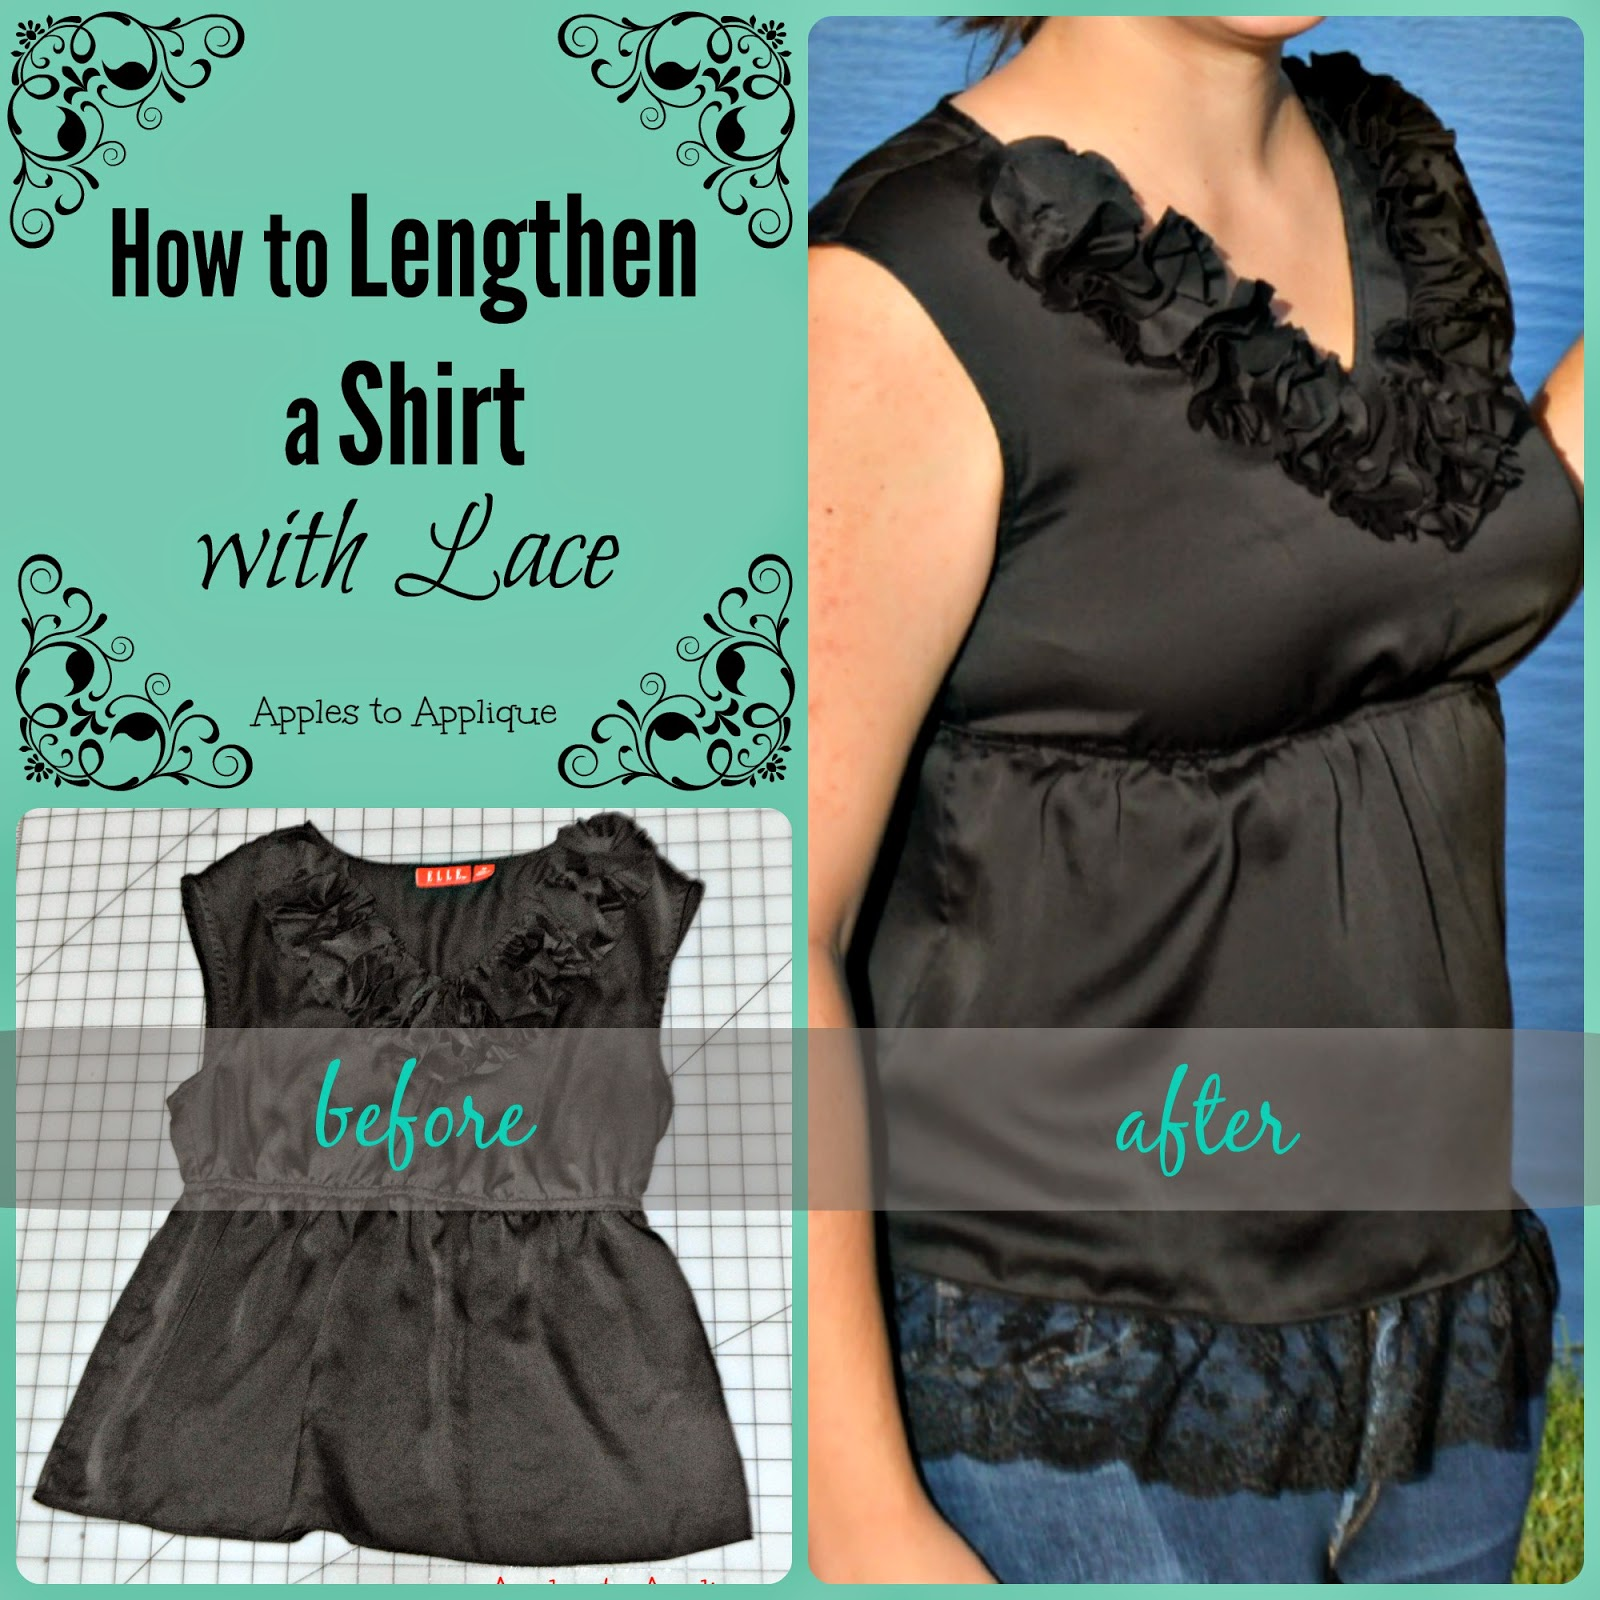 How to lengthen a shirt with lace diy image